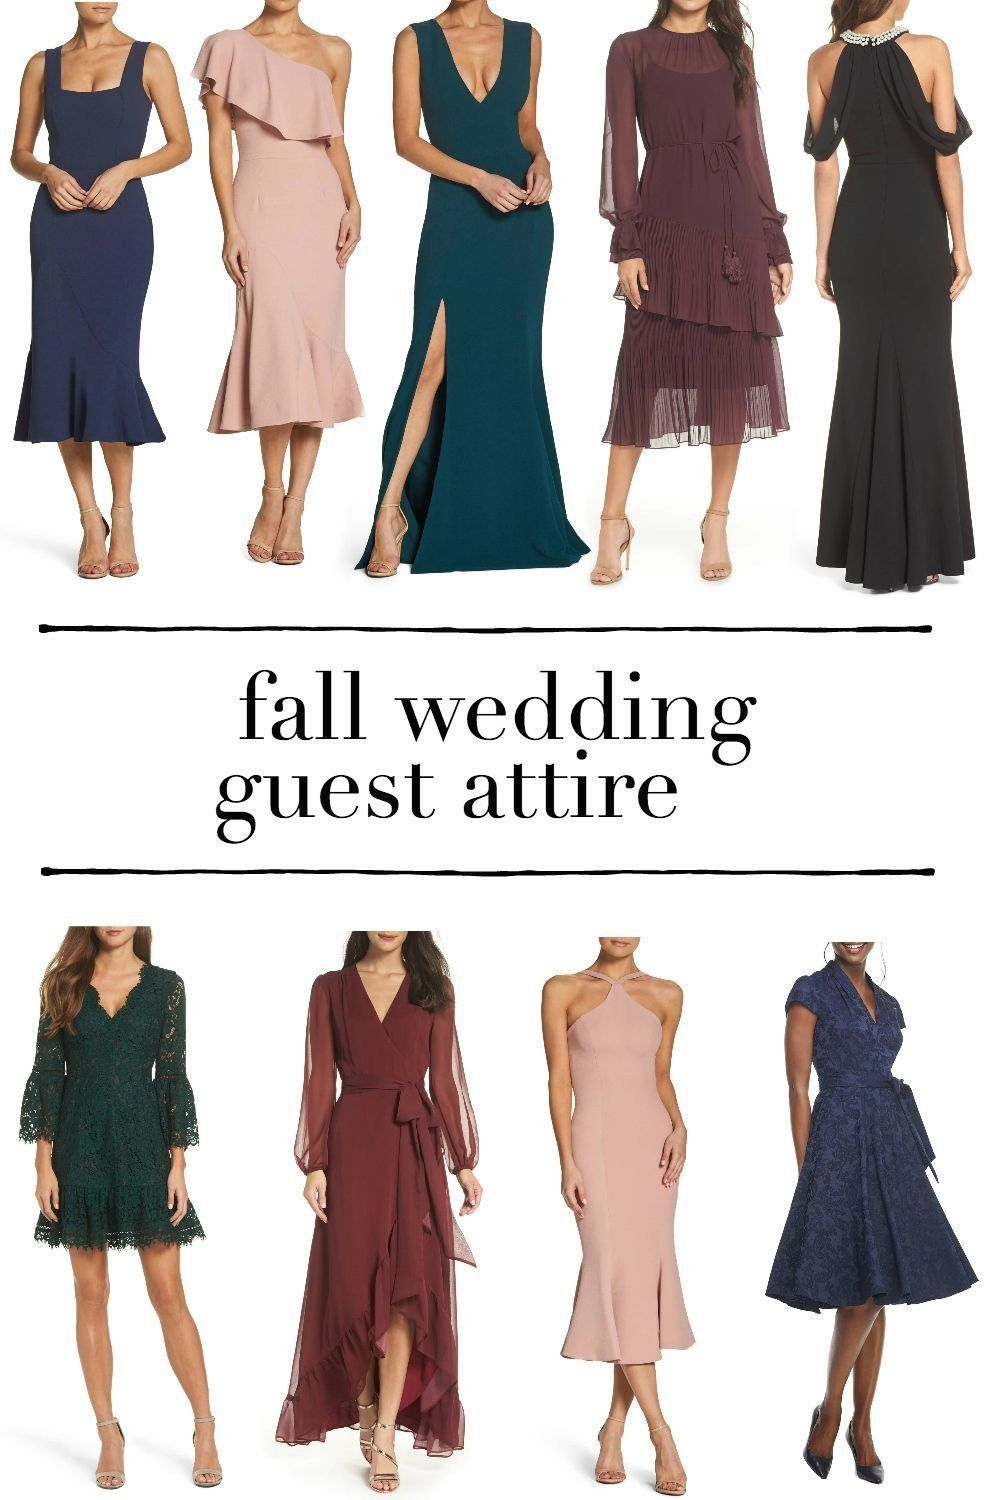 Fall Wedding Guest Dresses 2018 What To Wear To A Fall Wedding Fall Weddin In 2020 Fall Wedding Outfits Wedding Guest Outfit Fall Wedding Attire Guest